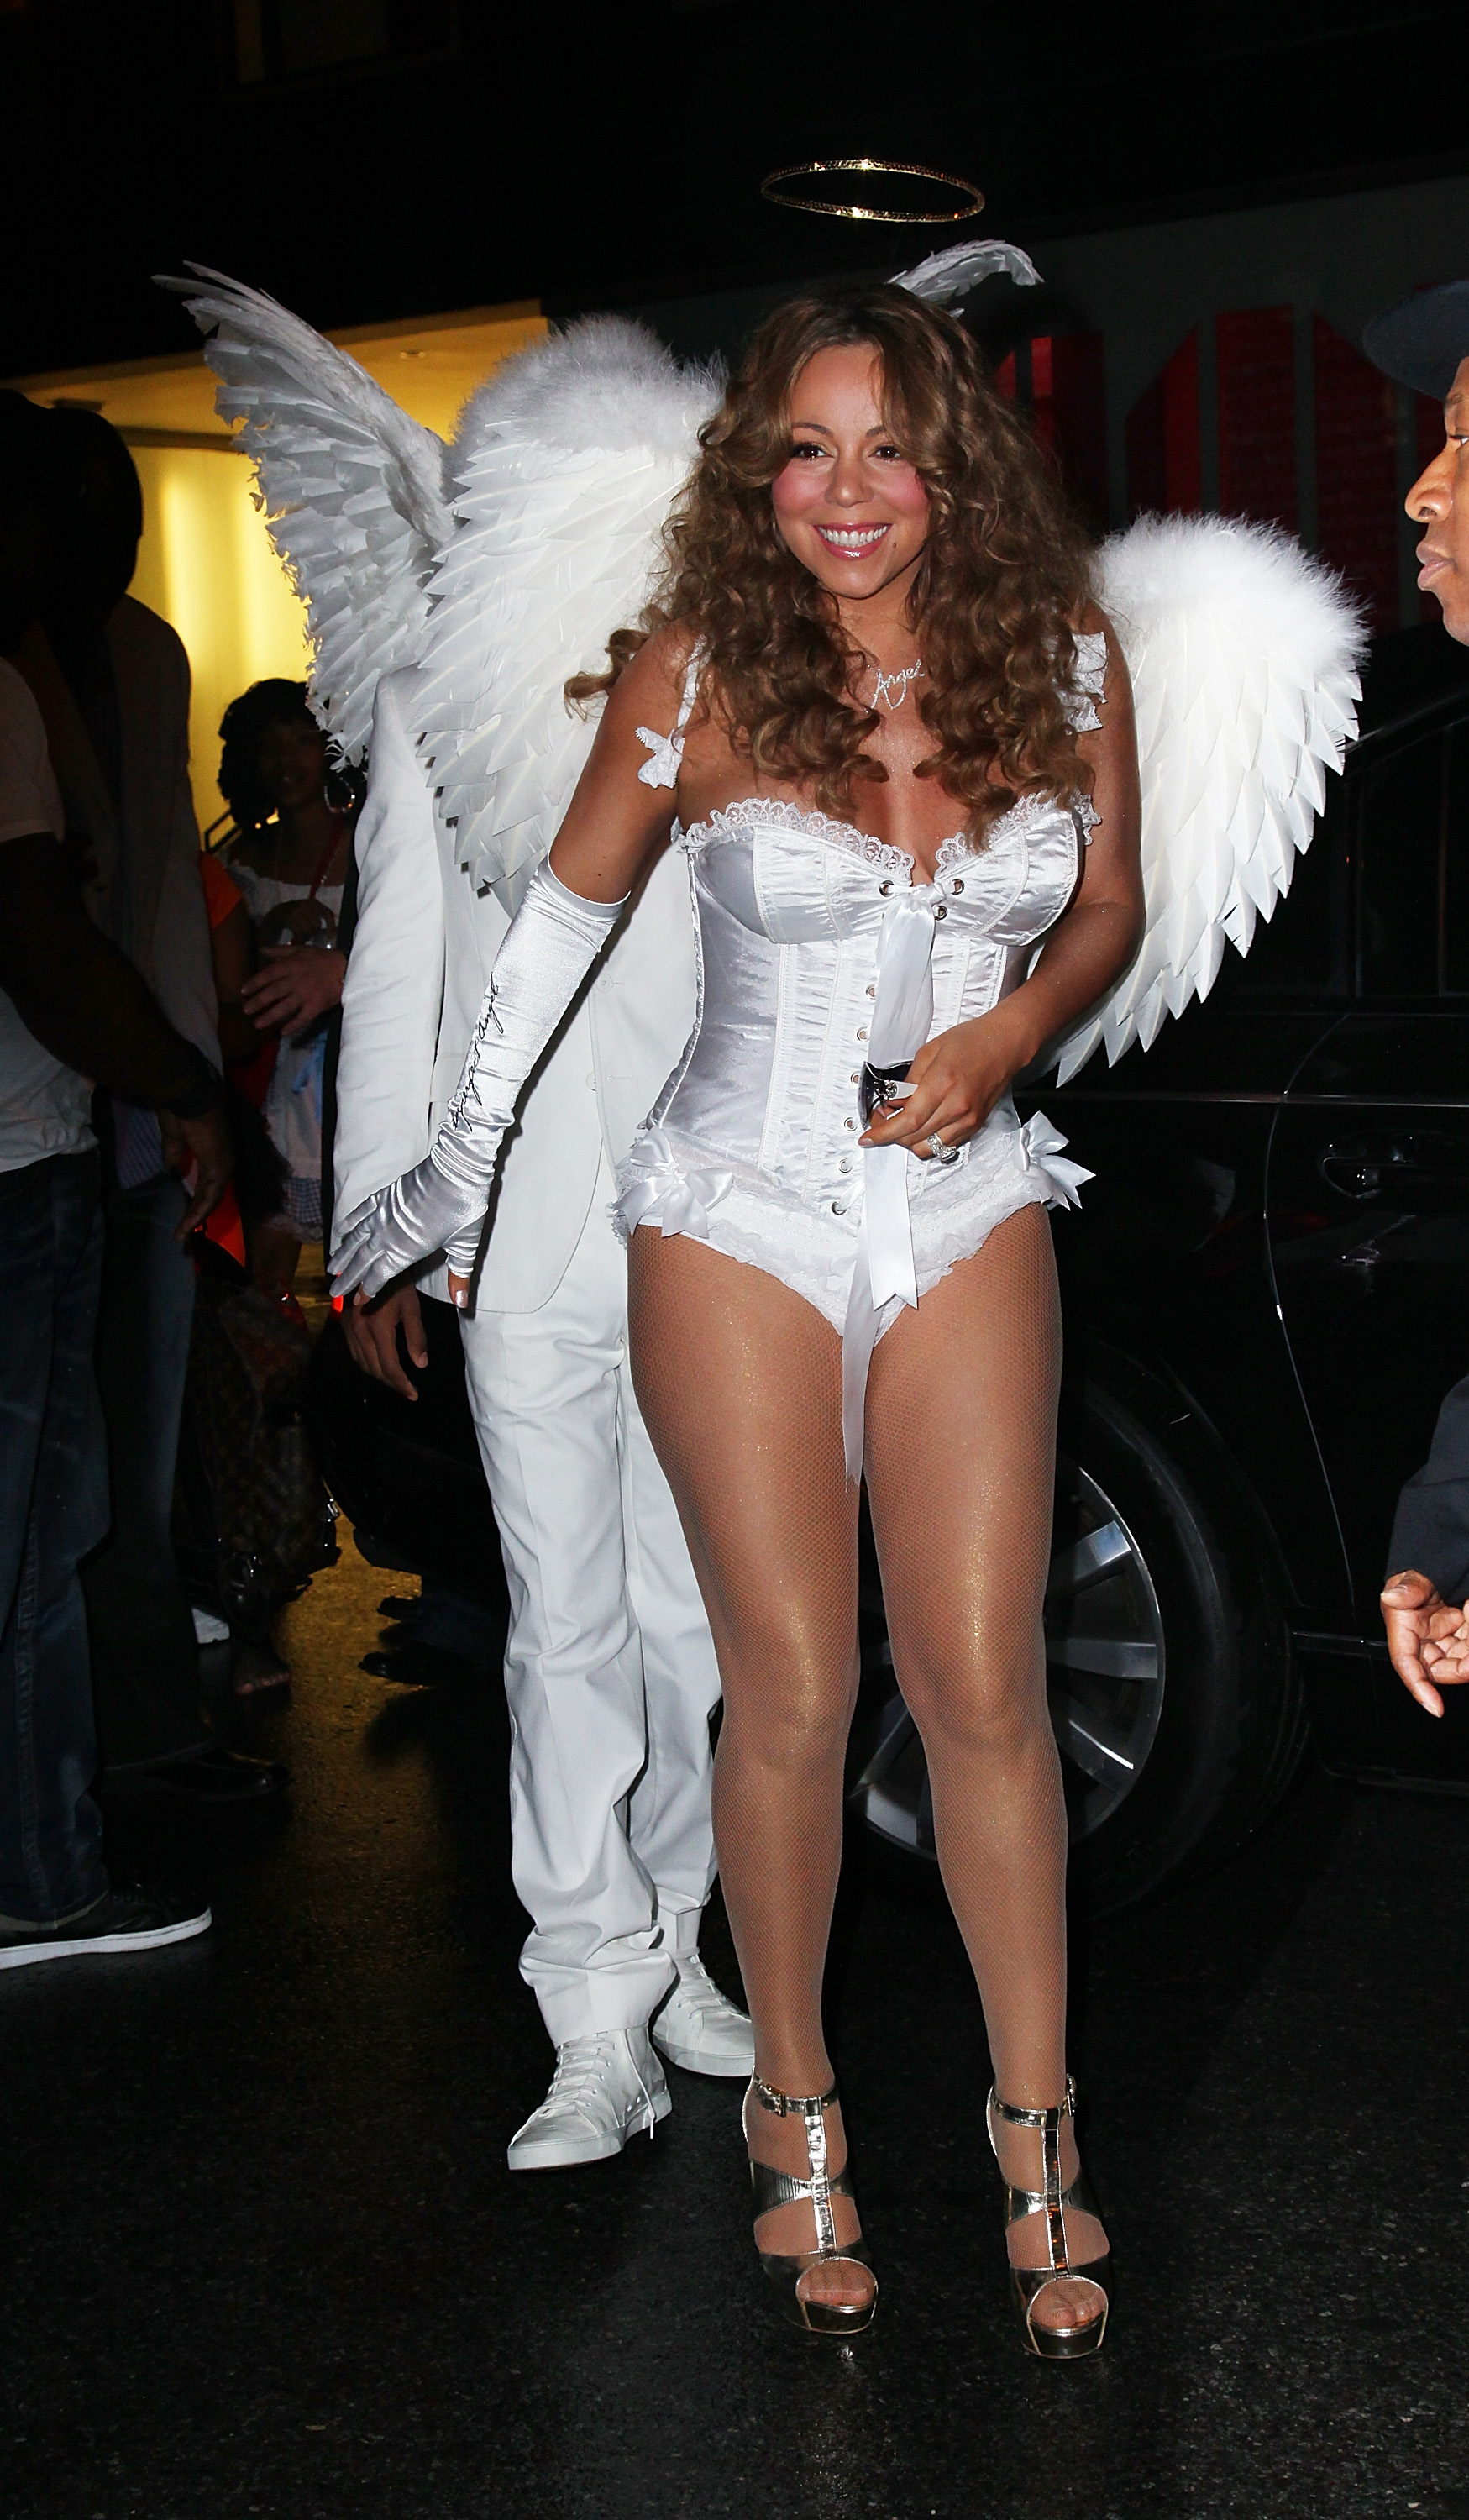 Mariah Carey Hosts A Halloween Celebration At M2 Ultra Lounge